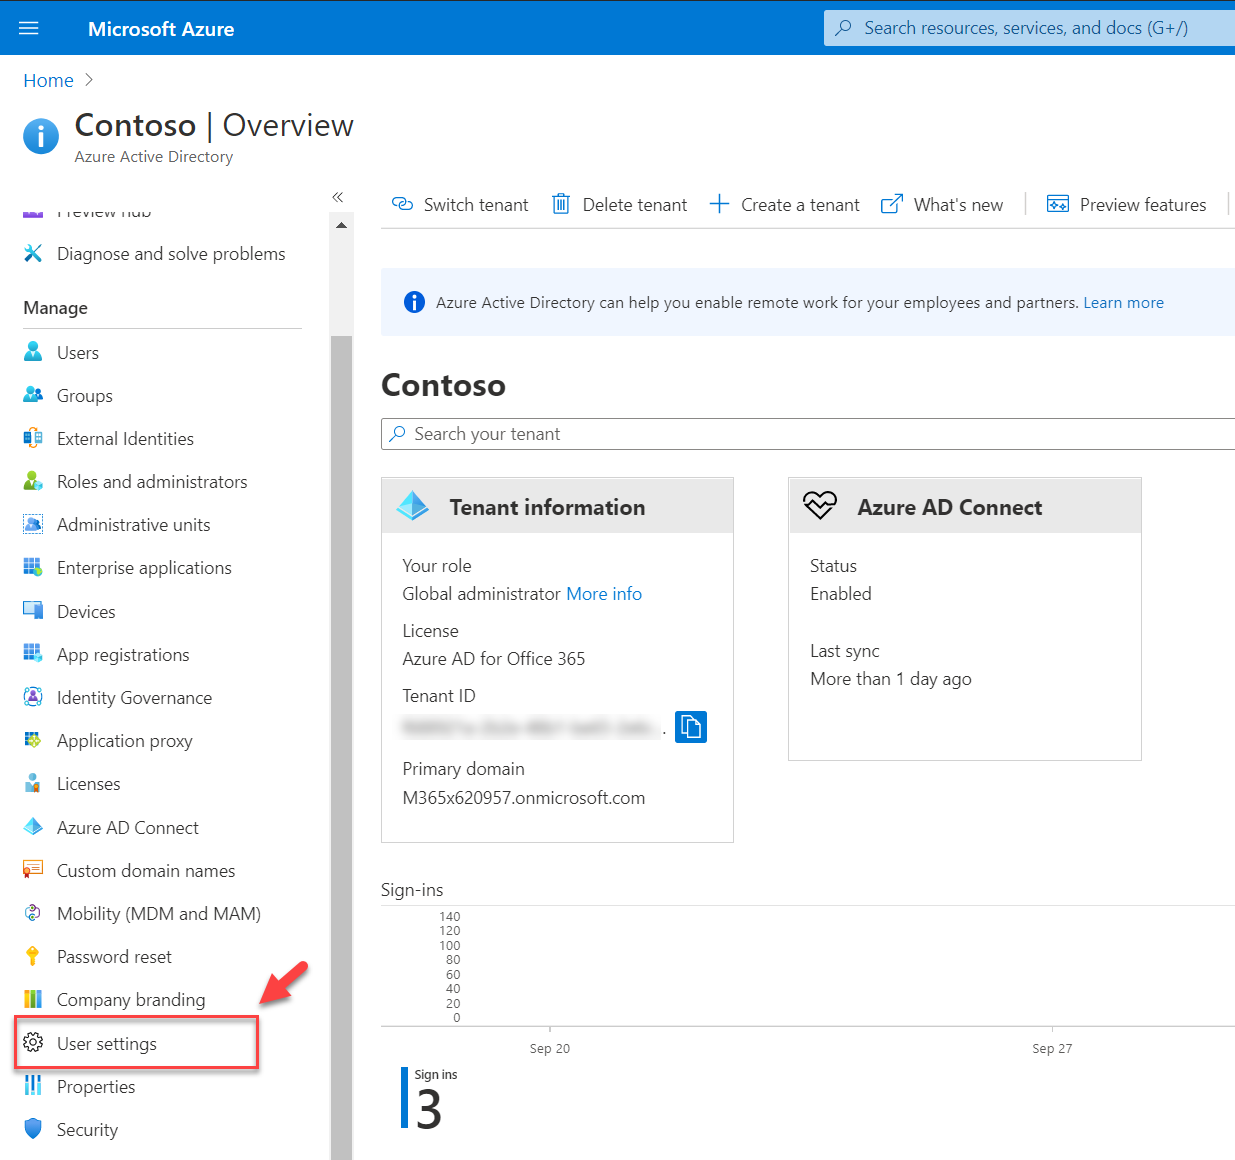 Azure AD user settings